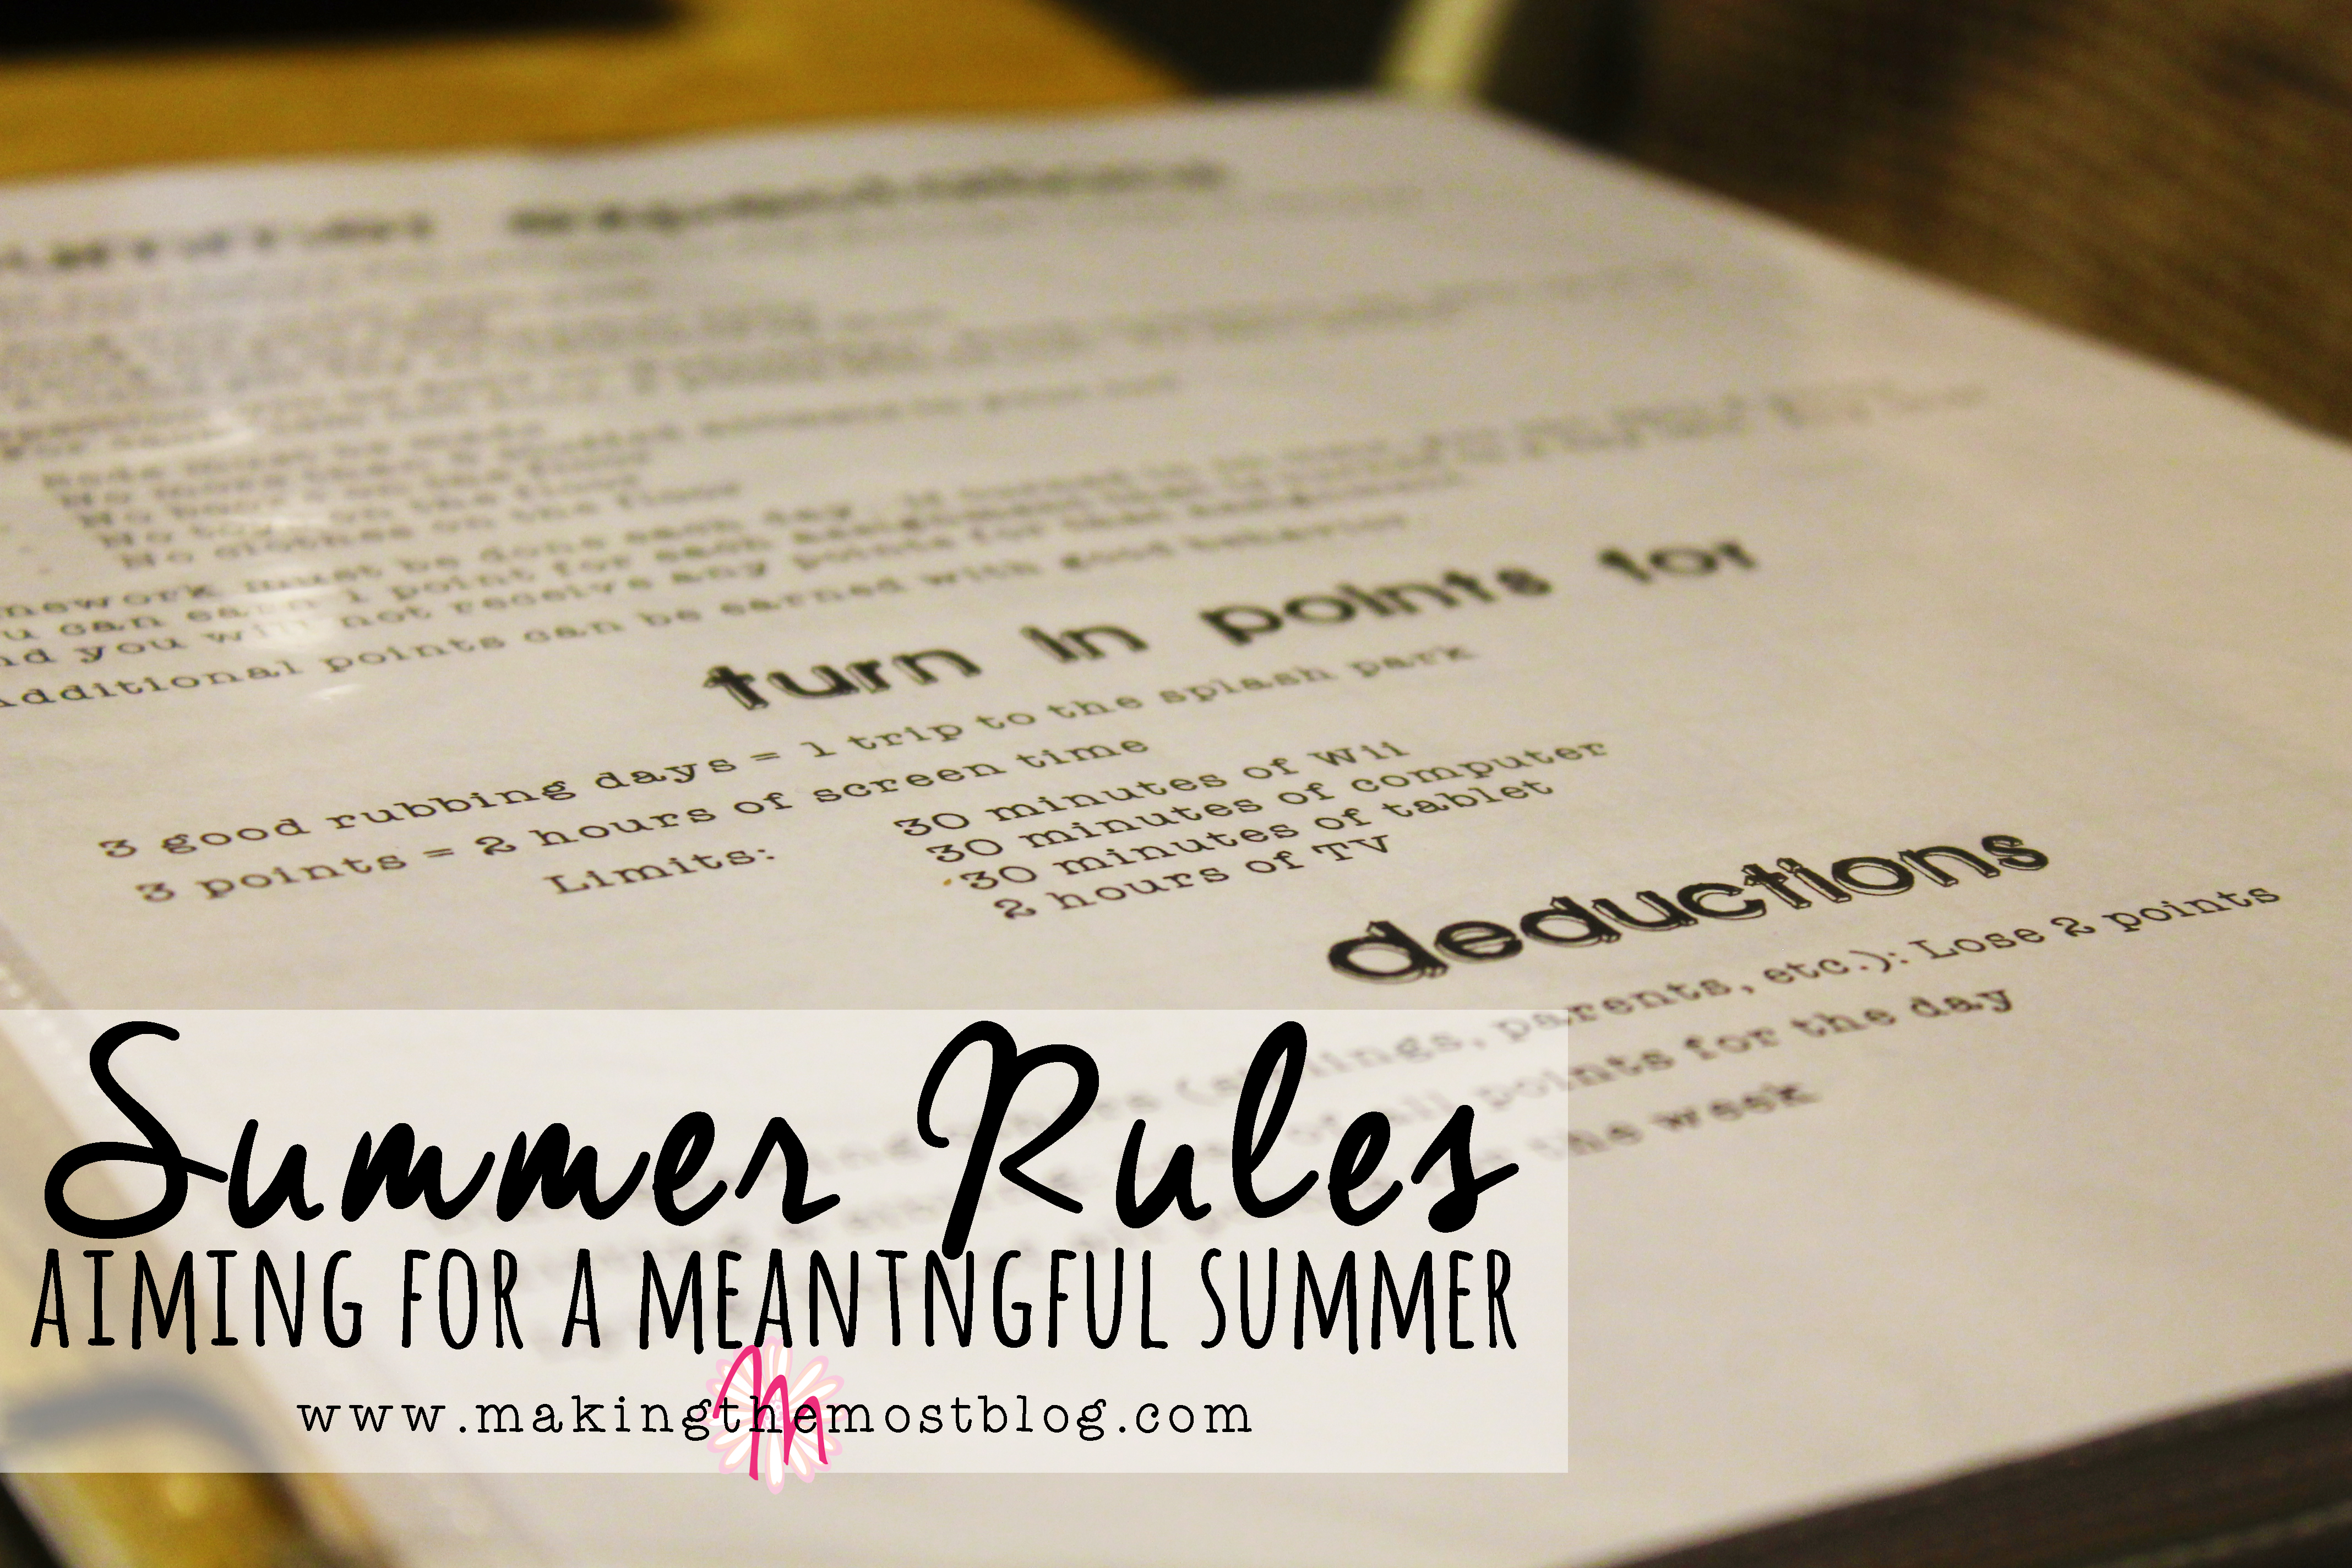 Summer Rules: Aiming for a Meaningful Summer | Making the Most Blog